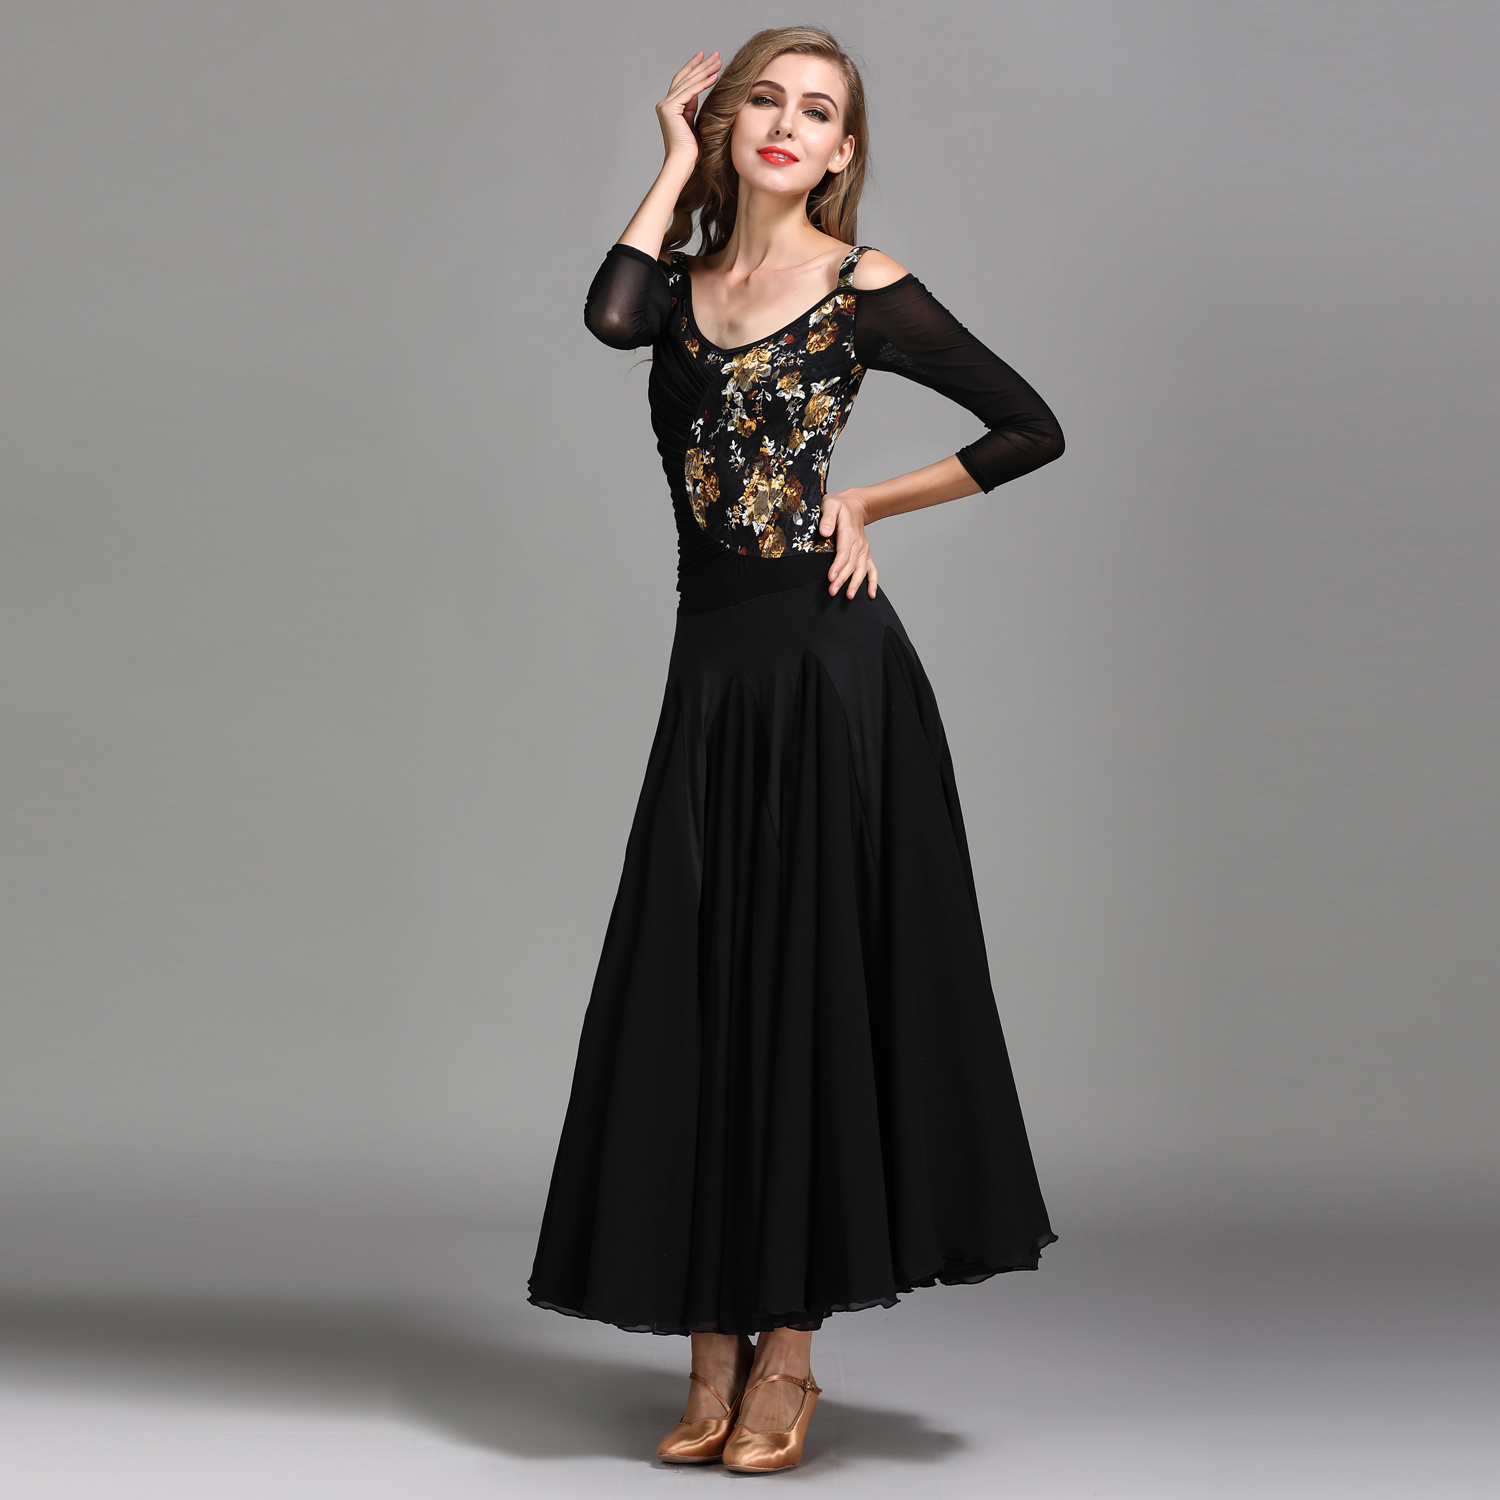 Modern Dance Costume Women Lady Adult Waltzing Tango Lace Dancing Dress Ballroom Costume Evening Party Dress 1846 and 1847 latin dance top and skirt suits dance dress ballroom costume leotard women lady adult evening party dress